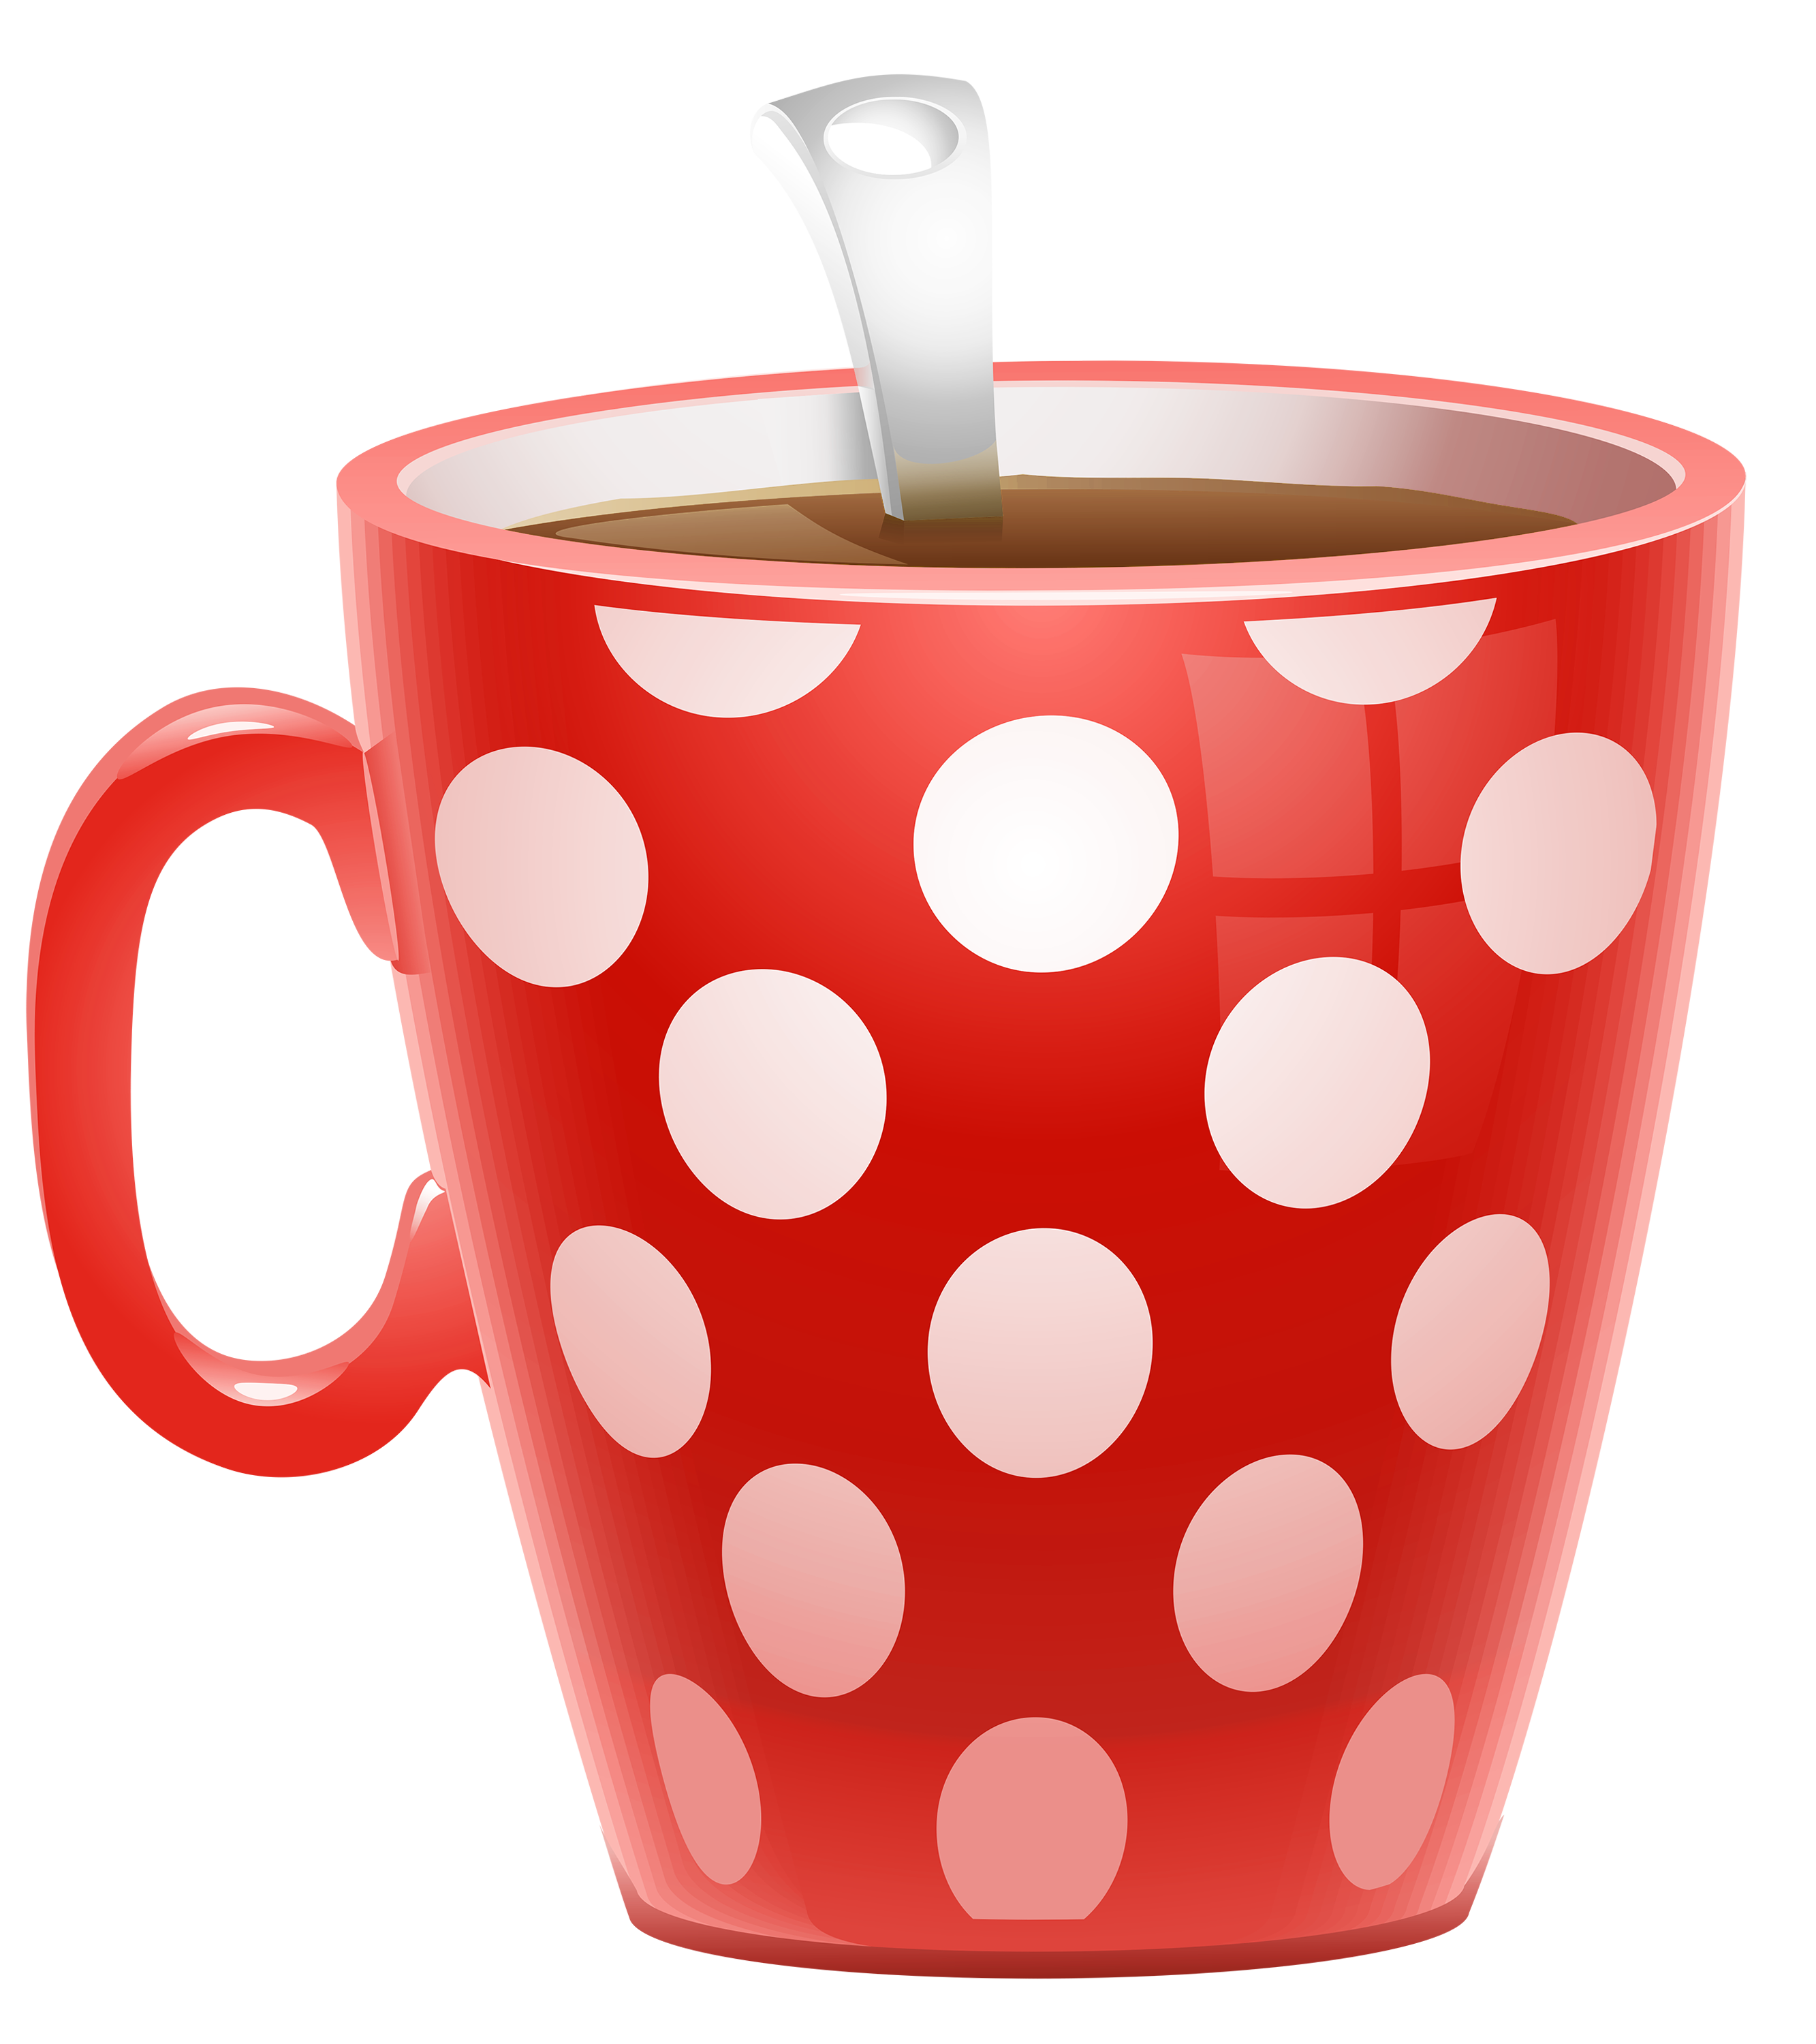 coffee cup clipart red